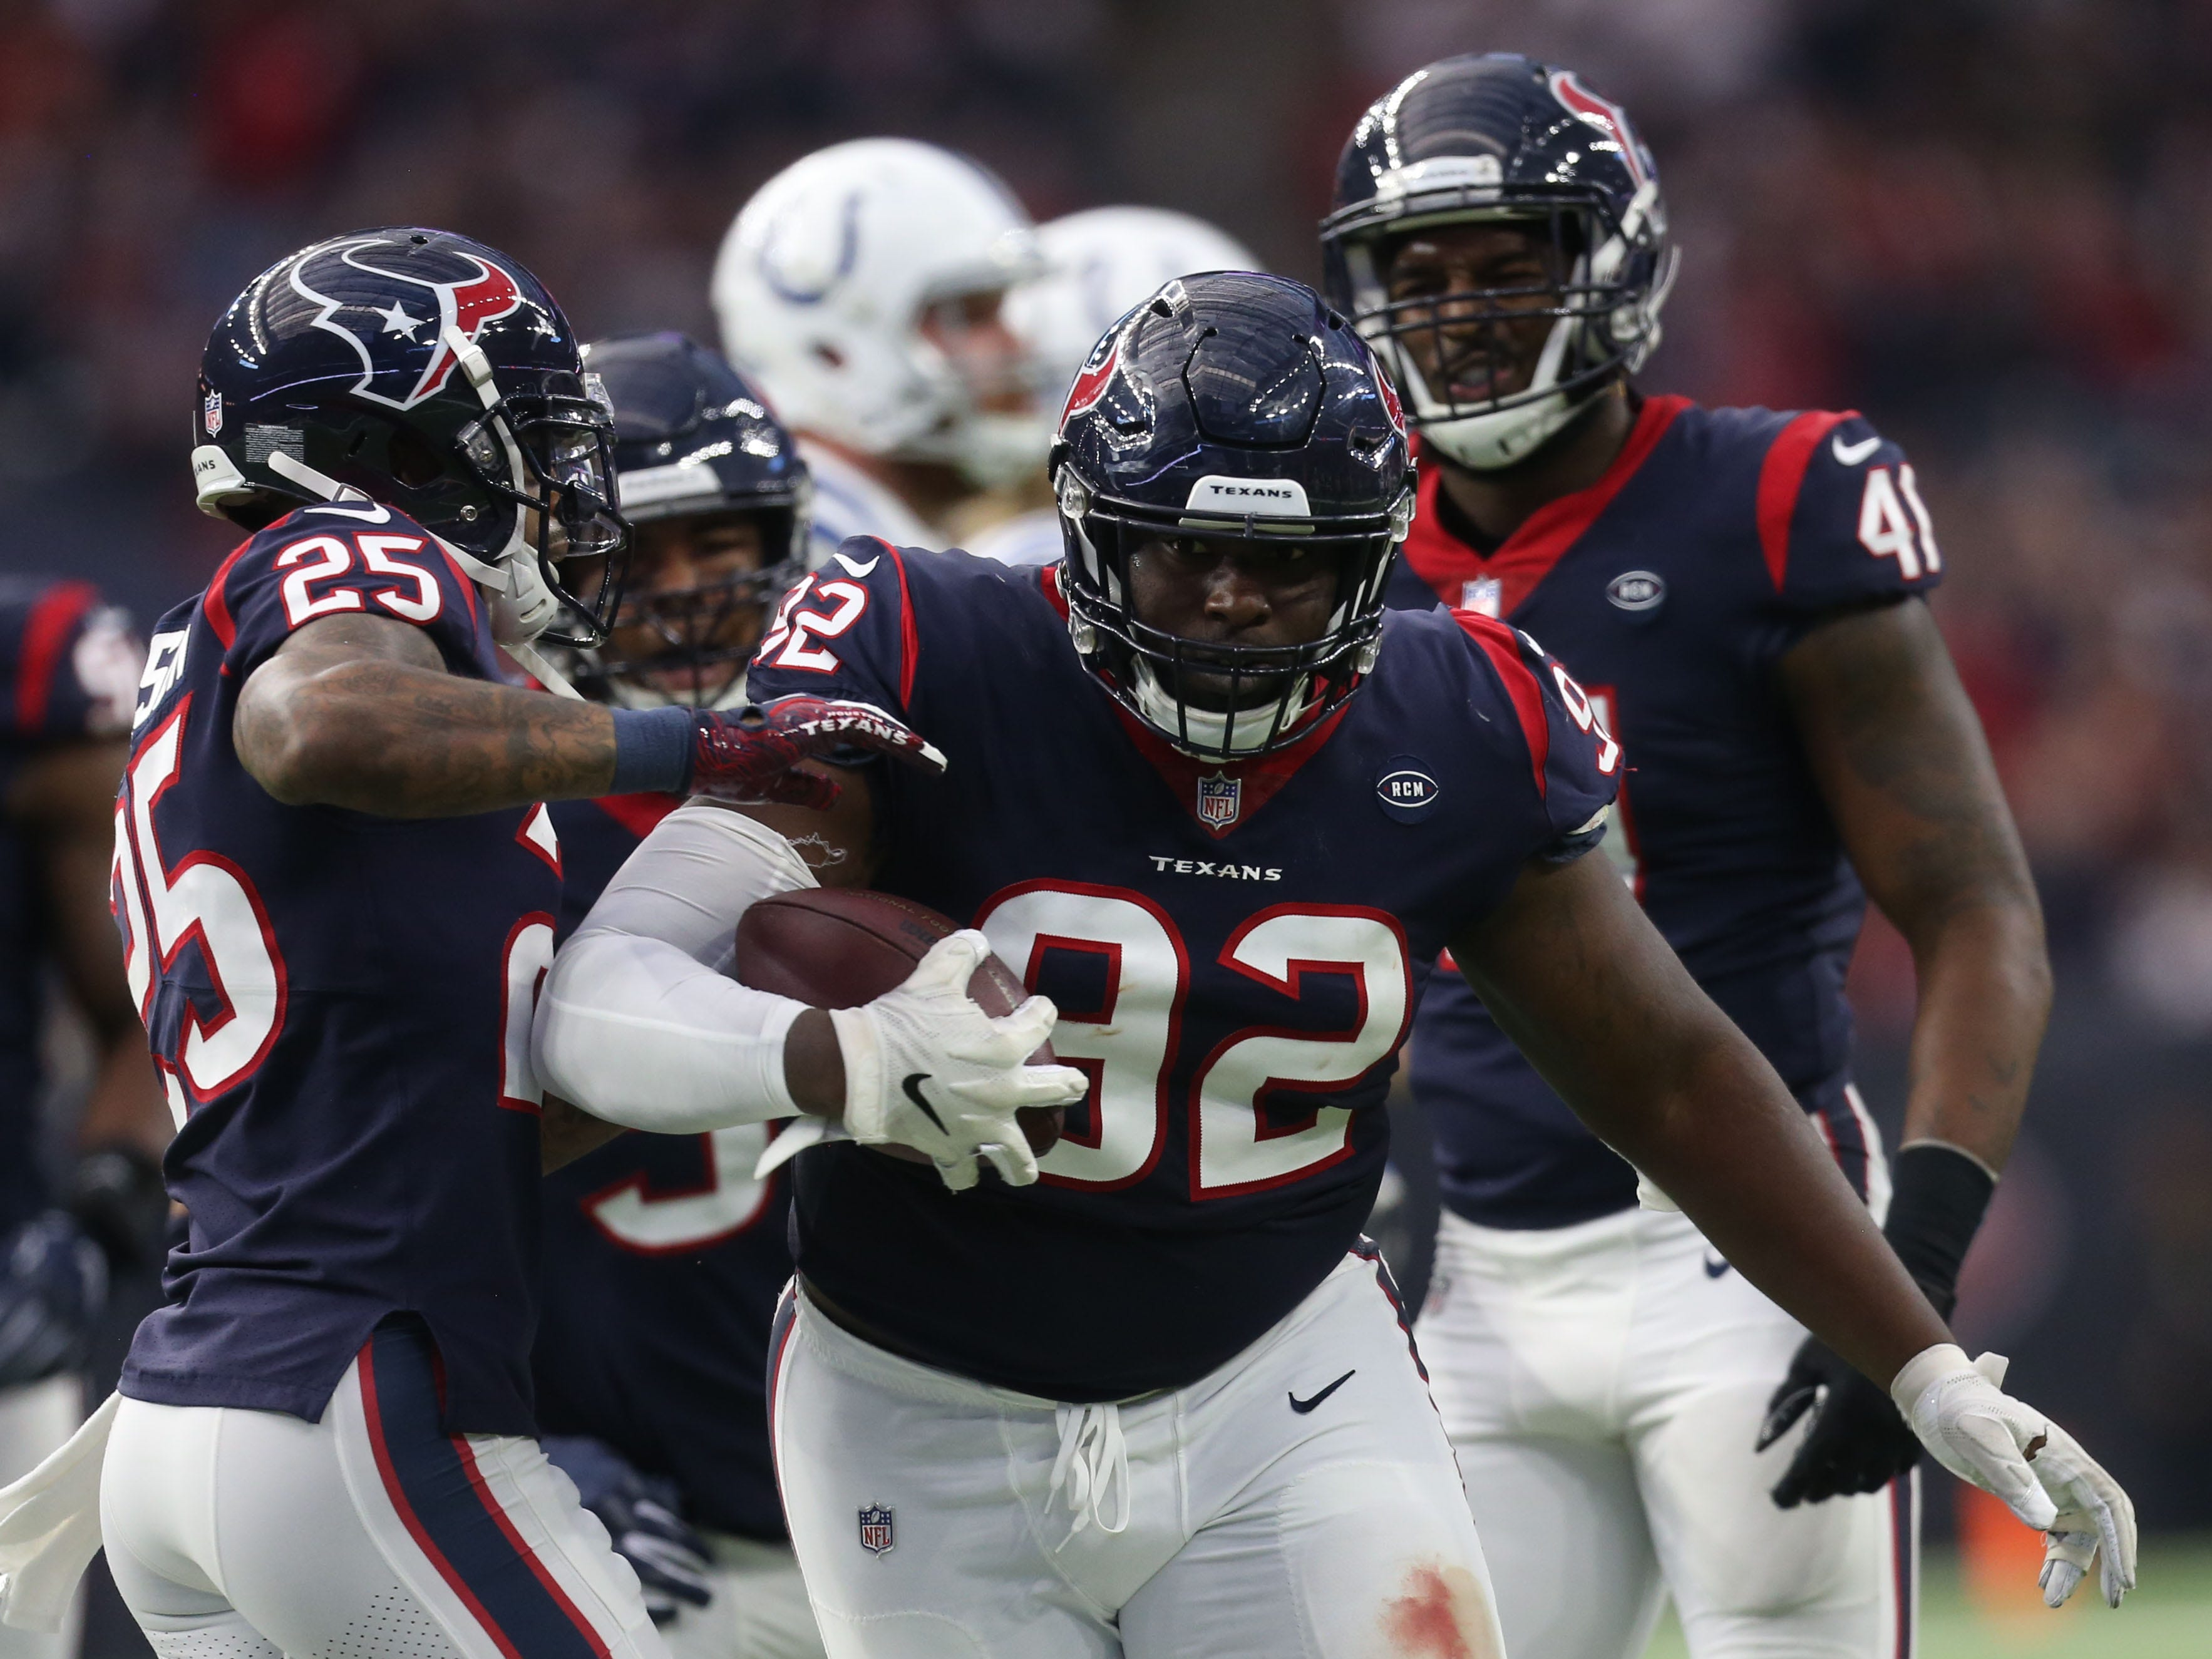 Houston Texans nose tackle Brandon Dunn (92) reacts after intercepting a pass against the Indianapolis Colts in the first half in a AFC Wild Card playoff football game at NRG Stadium.